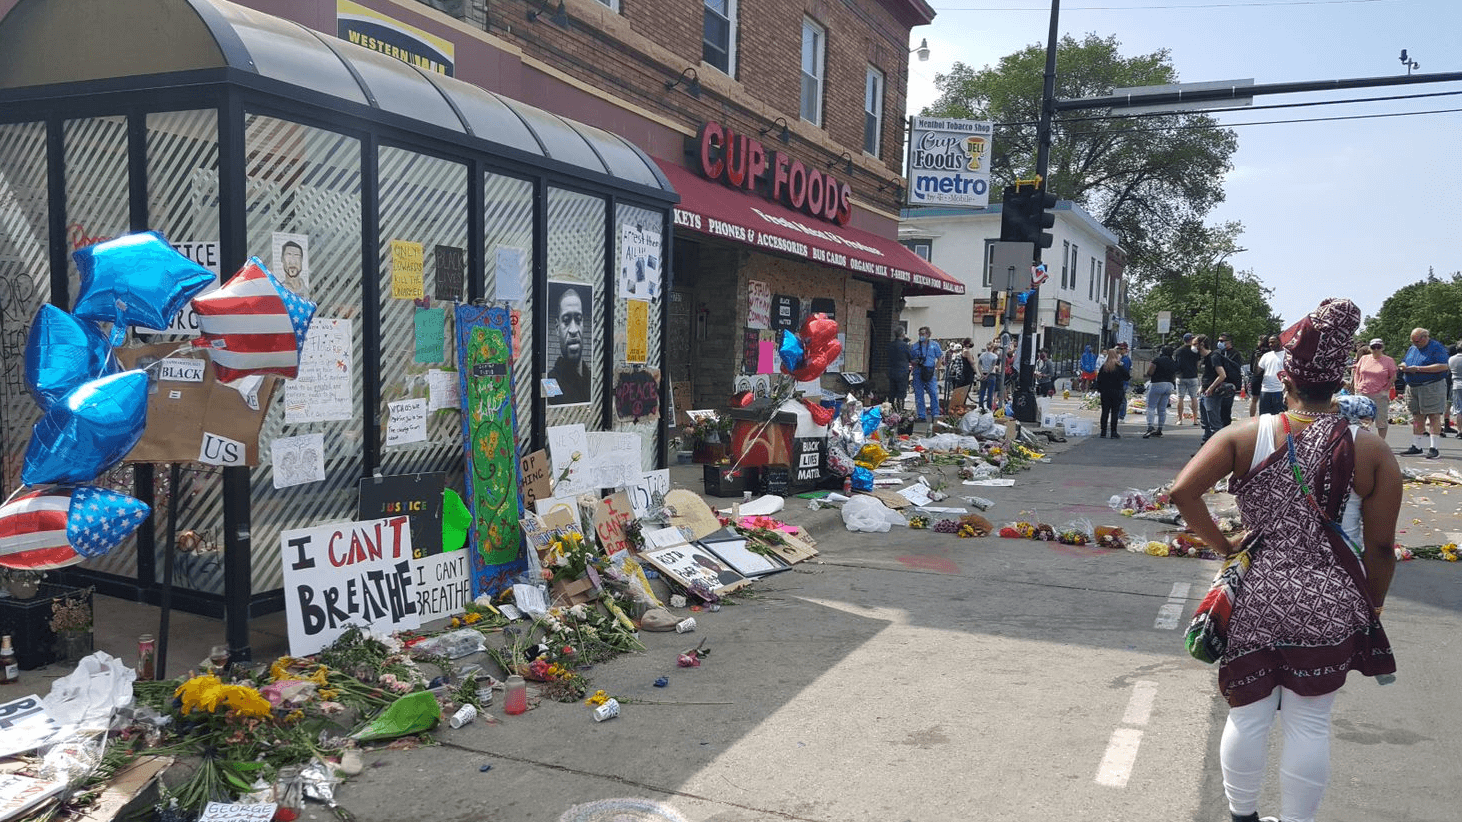 [Click to view gallery] Attorney at Law Magazine Minnesota Publisher David Seawell photographed the initial police incident area turned memorial and surrounding areas of Minneapolis on the morning of Saturday May 30.